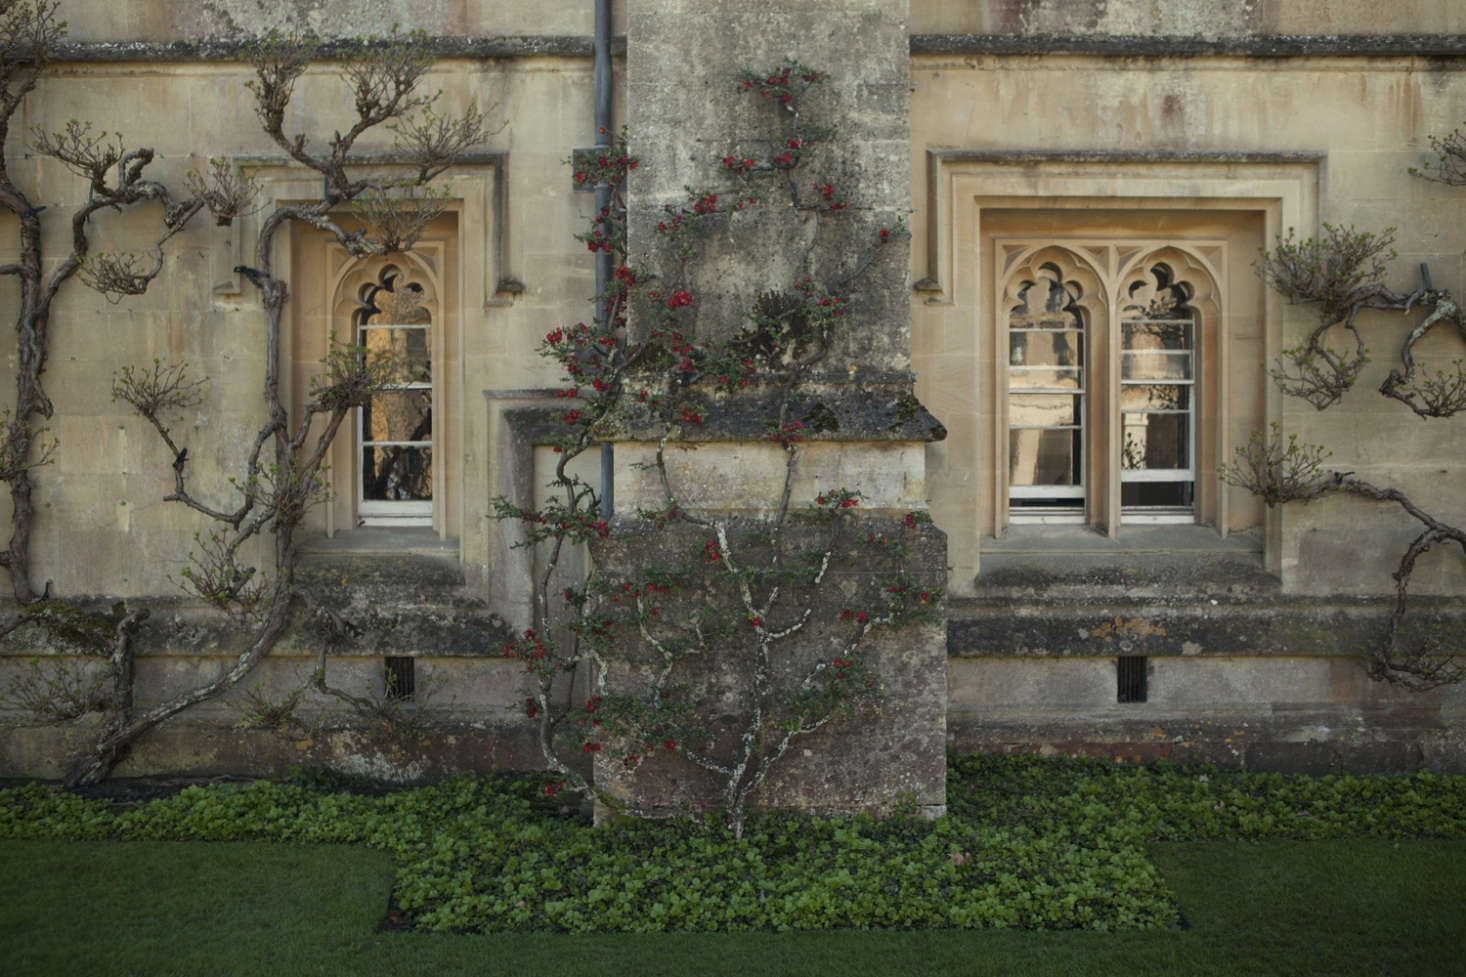 Photograph by Jim Powell for Gardenista, from The Secret History: A Master Class in Gothic Pruning.